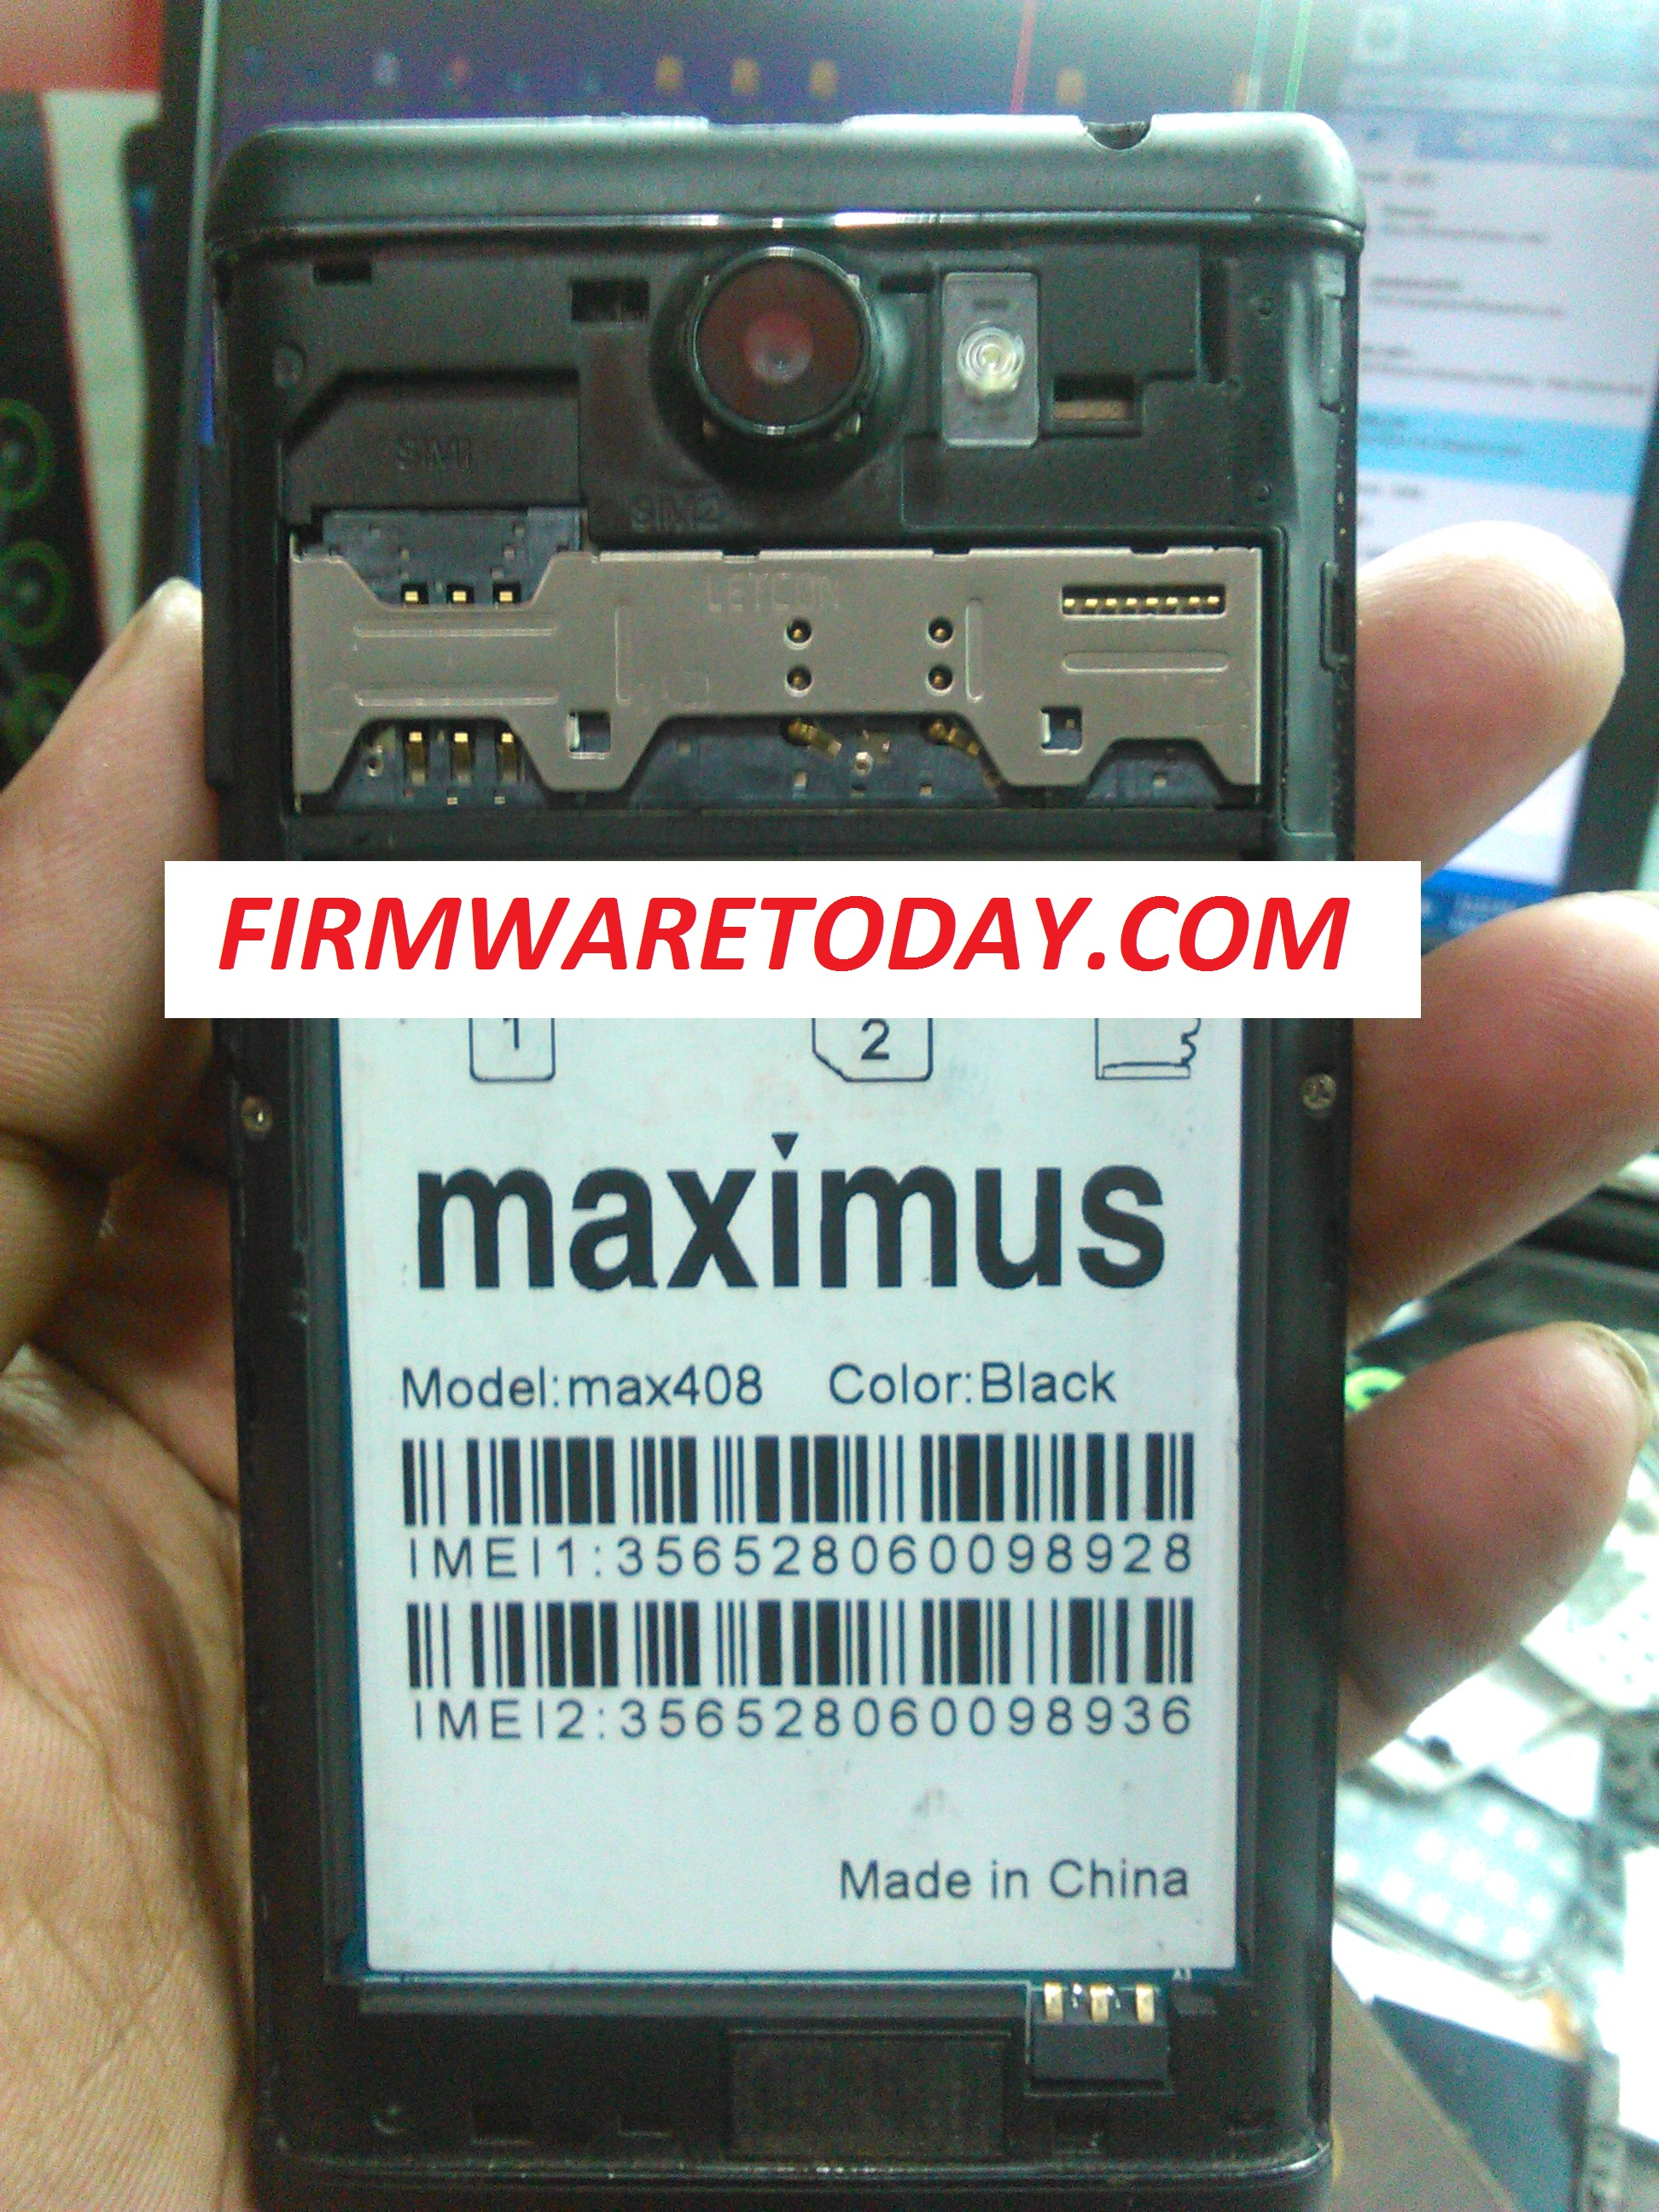 MAXIMUS MAX408 OFFICIAL FIRMWARE WITHOUTPASS 2ND UPDATE (MT6572) 2000% TESTED BY FIRMWARETODAY.COM